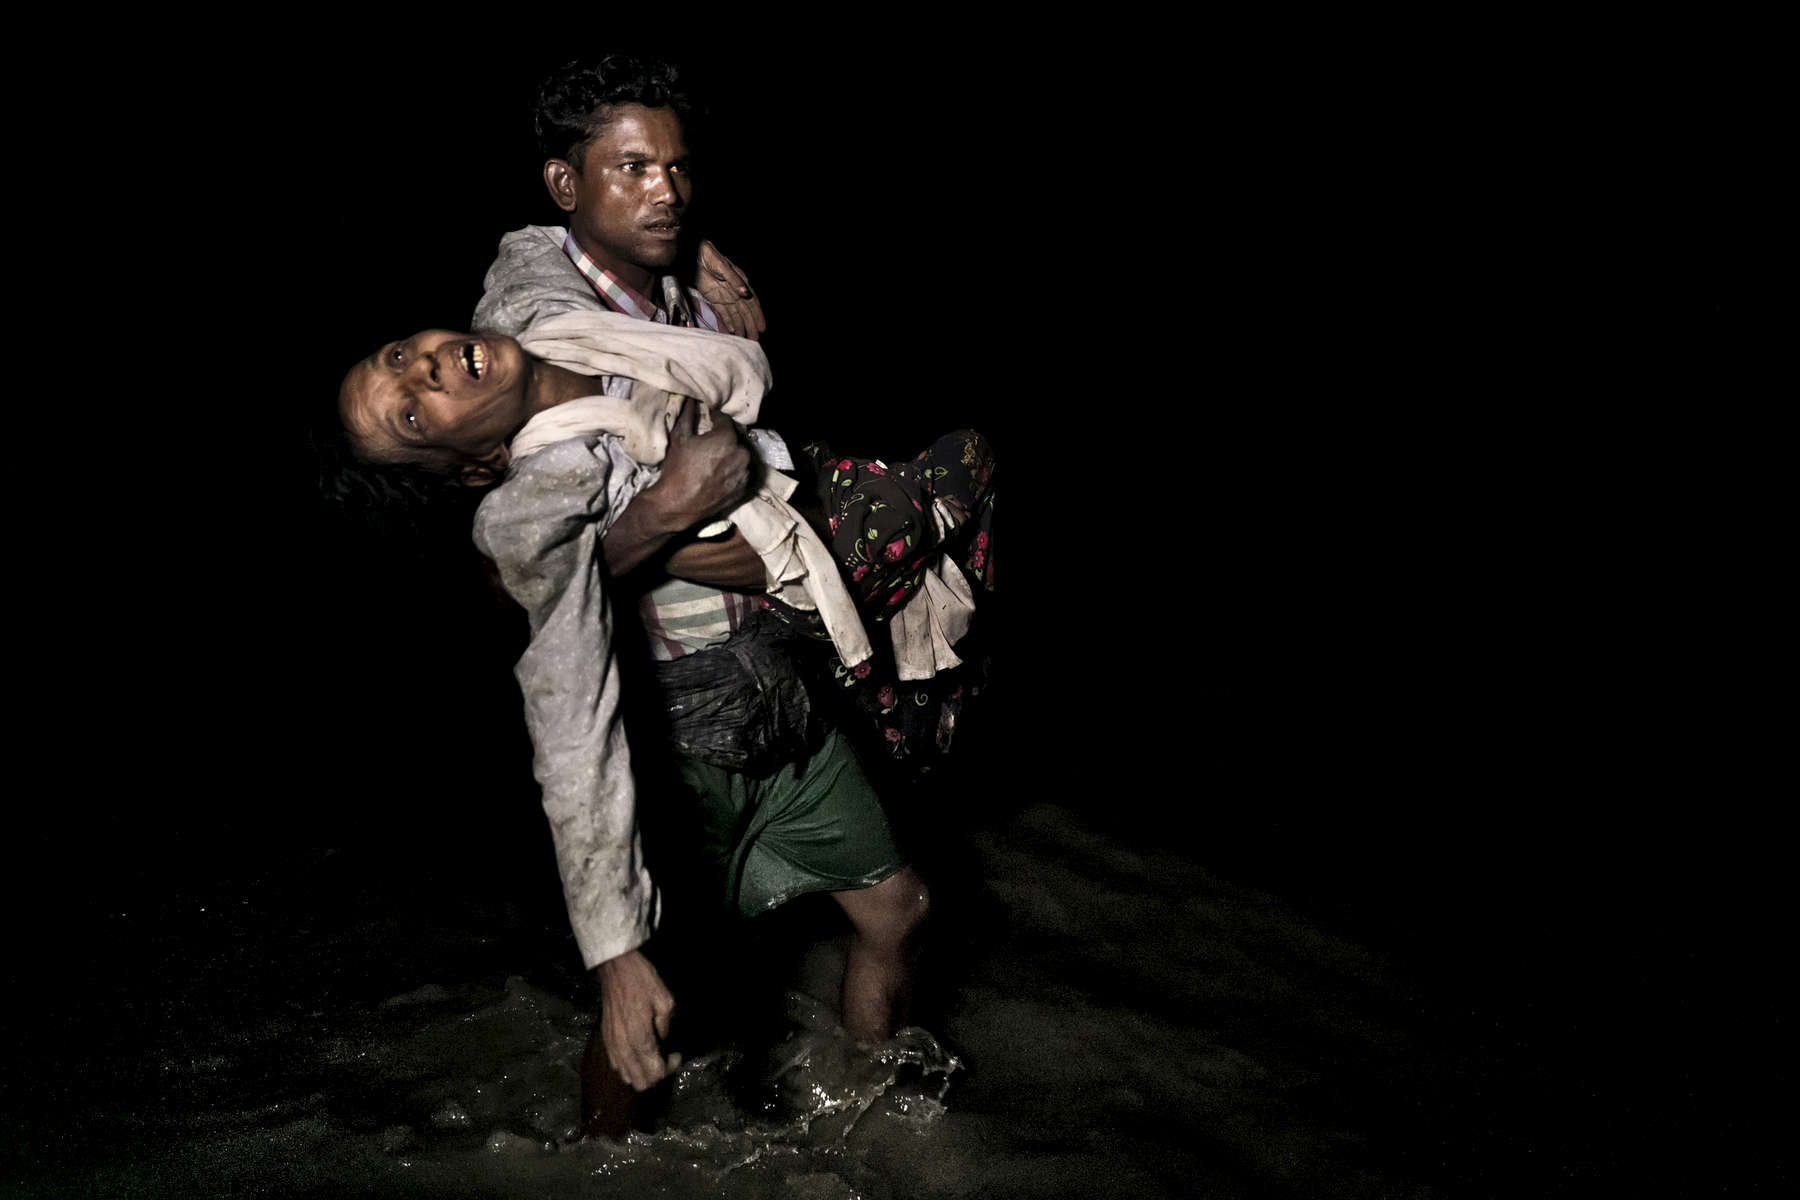 SHAH PORIR DWIP, BANGLADESH - SEPTEMBER 27: Sona Banu gets carried by Nobi Hossain through the shores of the Naf river as hundreds of Rohingya arrive by boats in the safety of darkness September 27, on Shah Porir Dwip island, Cox's Bazar, Bangladesh. Over 655,000 Rohingya refugees have fled into Bangladesh since late August during the outbreak of violence in Rakhine state.The refugee emergency unfolded in late August after an attack on state security forces by Rohingya insurgents, triggering a brutal military crackdown that has forced more than half of the country's 1.1 million population fleeing to neighboring Bangladesh creating the fastest cross-border exodus ever witnessed with over 630,000 new arrivals. Thousands of children who are traveling alone are at serious risk of trafficking and exploitation. Many traumatized refugees arrived telling stories of horror alleging rape, killings and the burning of hundreds of villages, which have been well documented by the media, along with the U.N and various human rights groups.